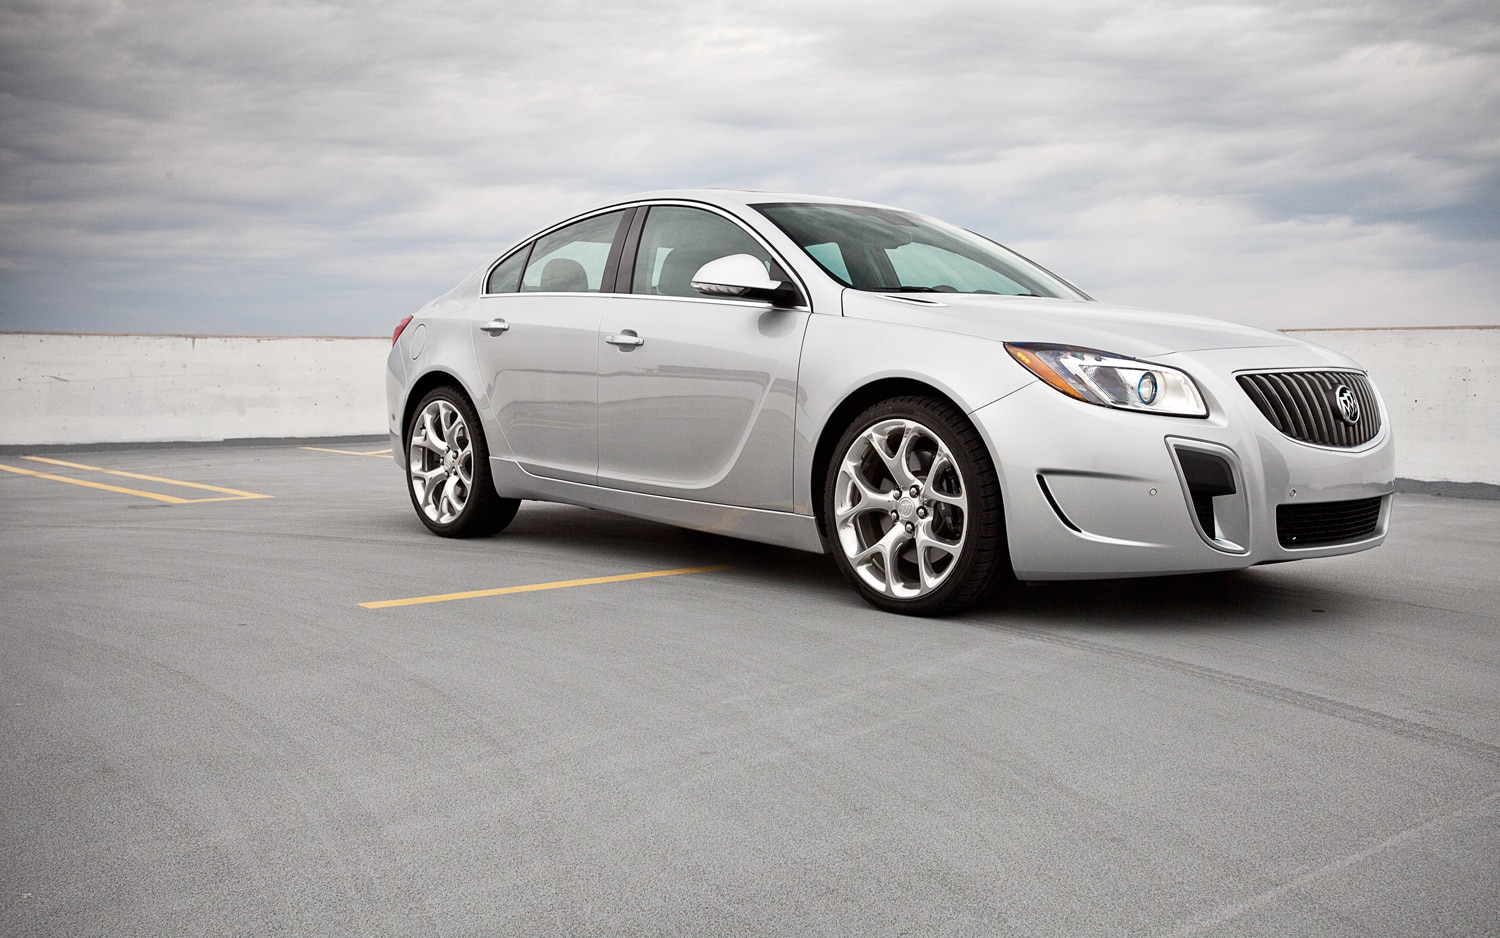 2012 Buick Regal GS Front Right Side View1